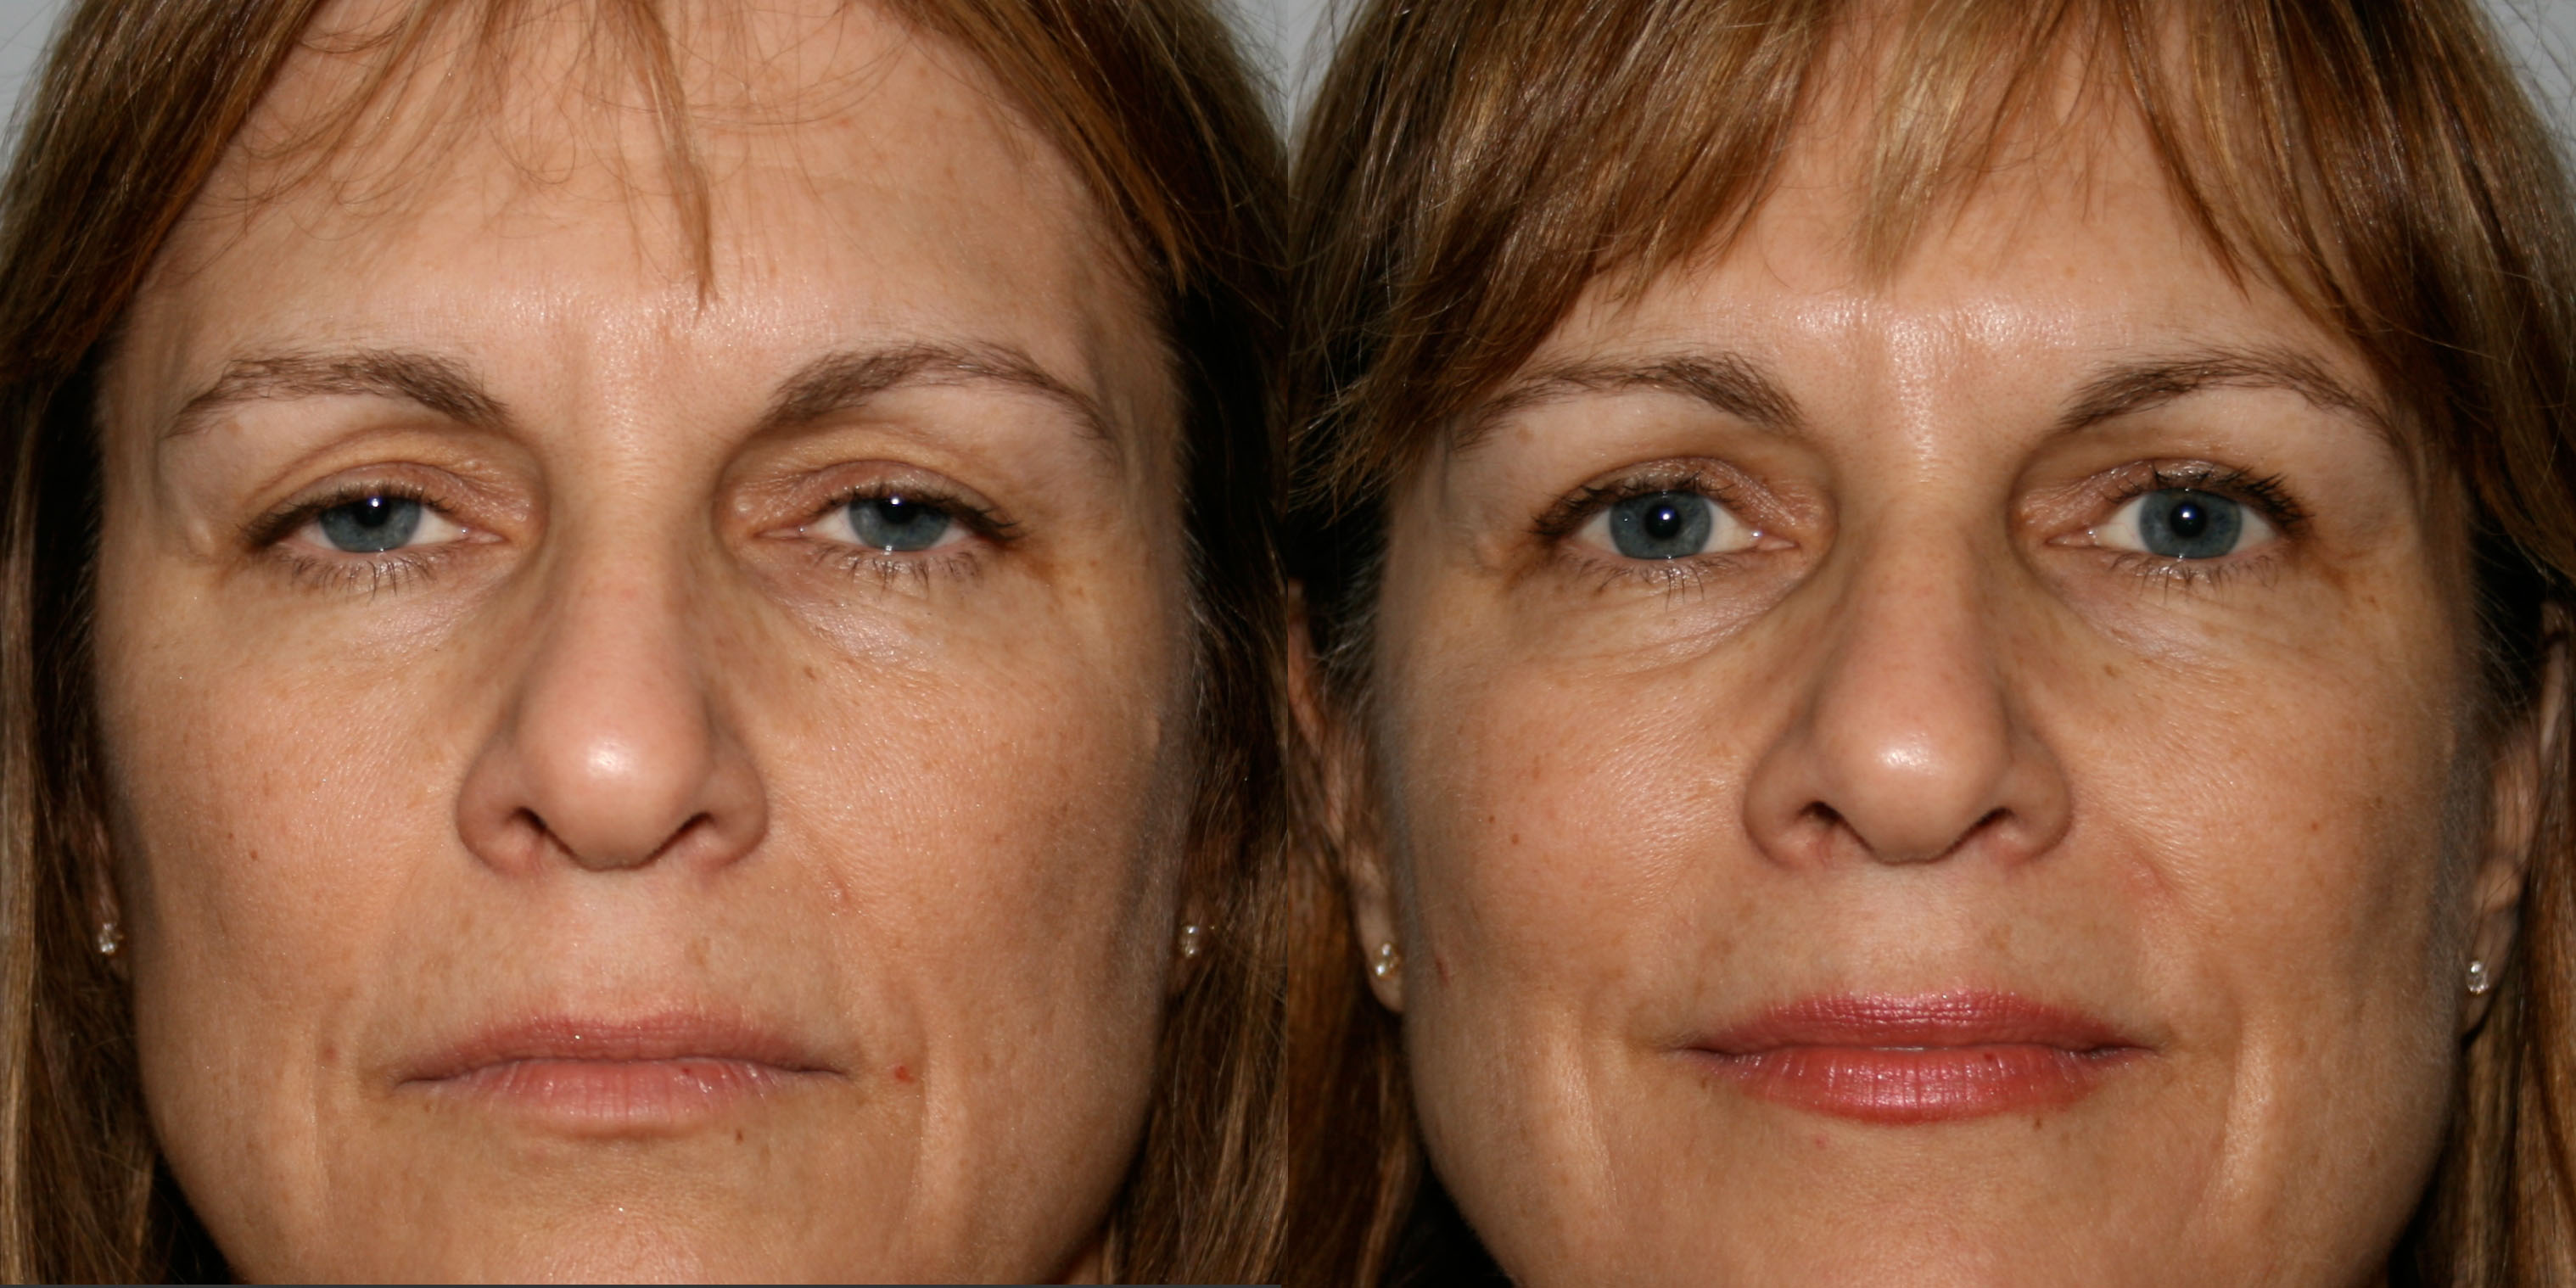 Before and After eyelid lift blepharoplasty photos